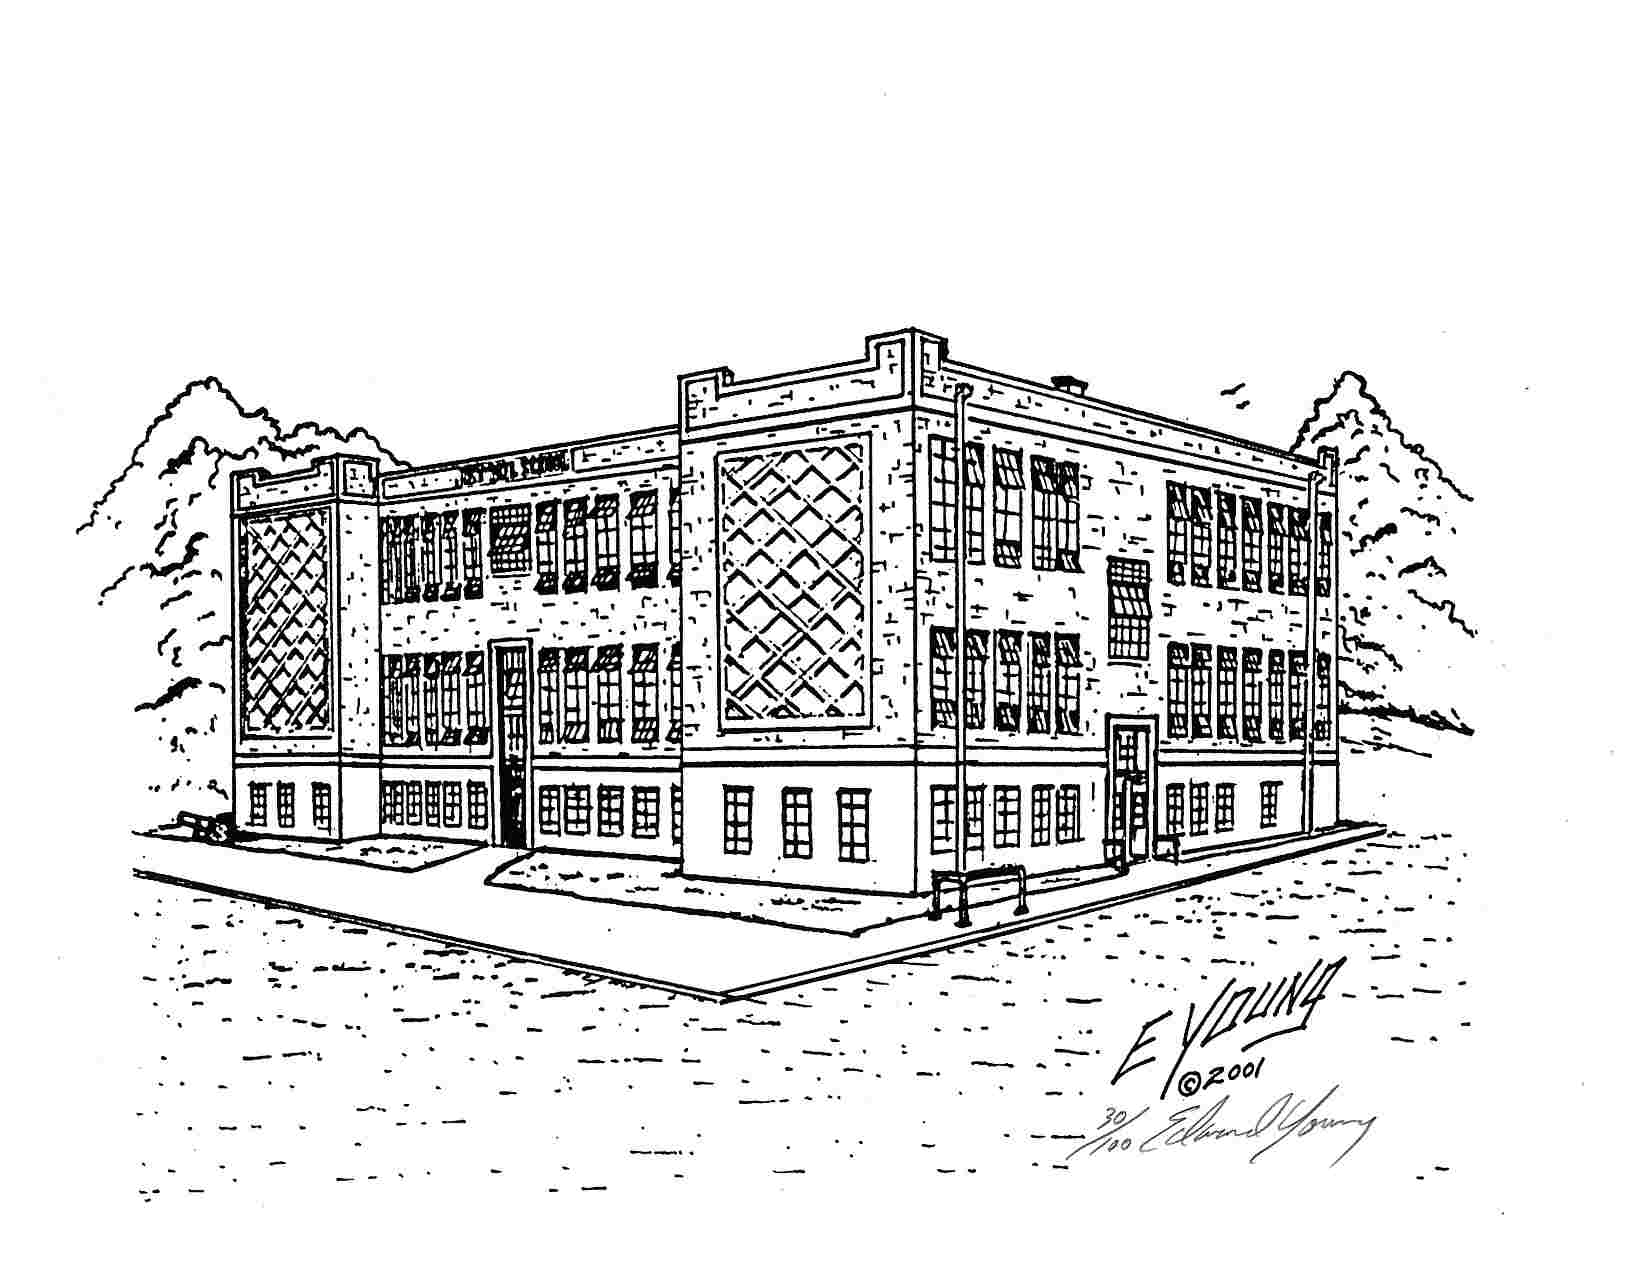 High School Building Drawing | www.pixshark.com - Images ...